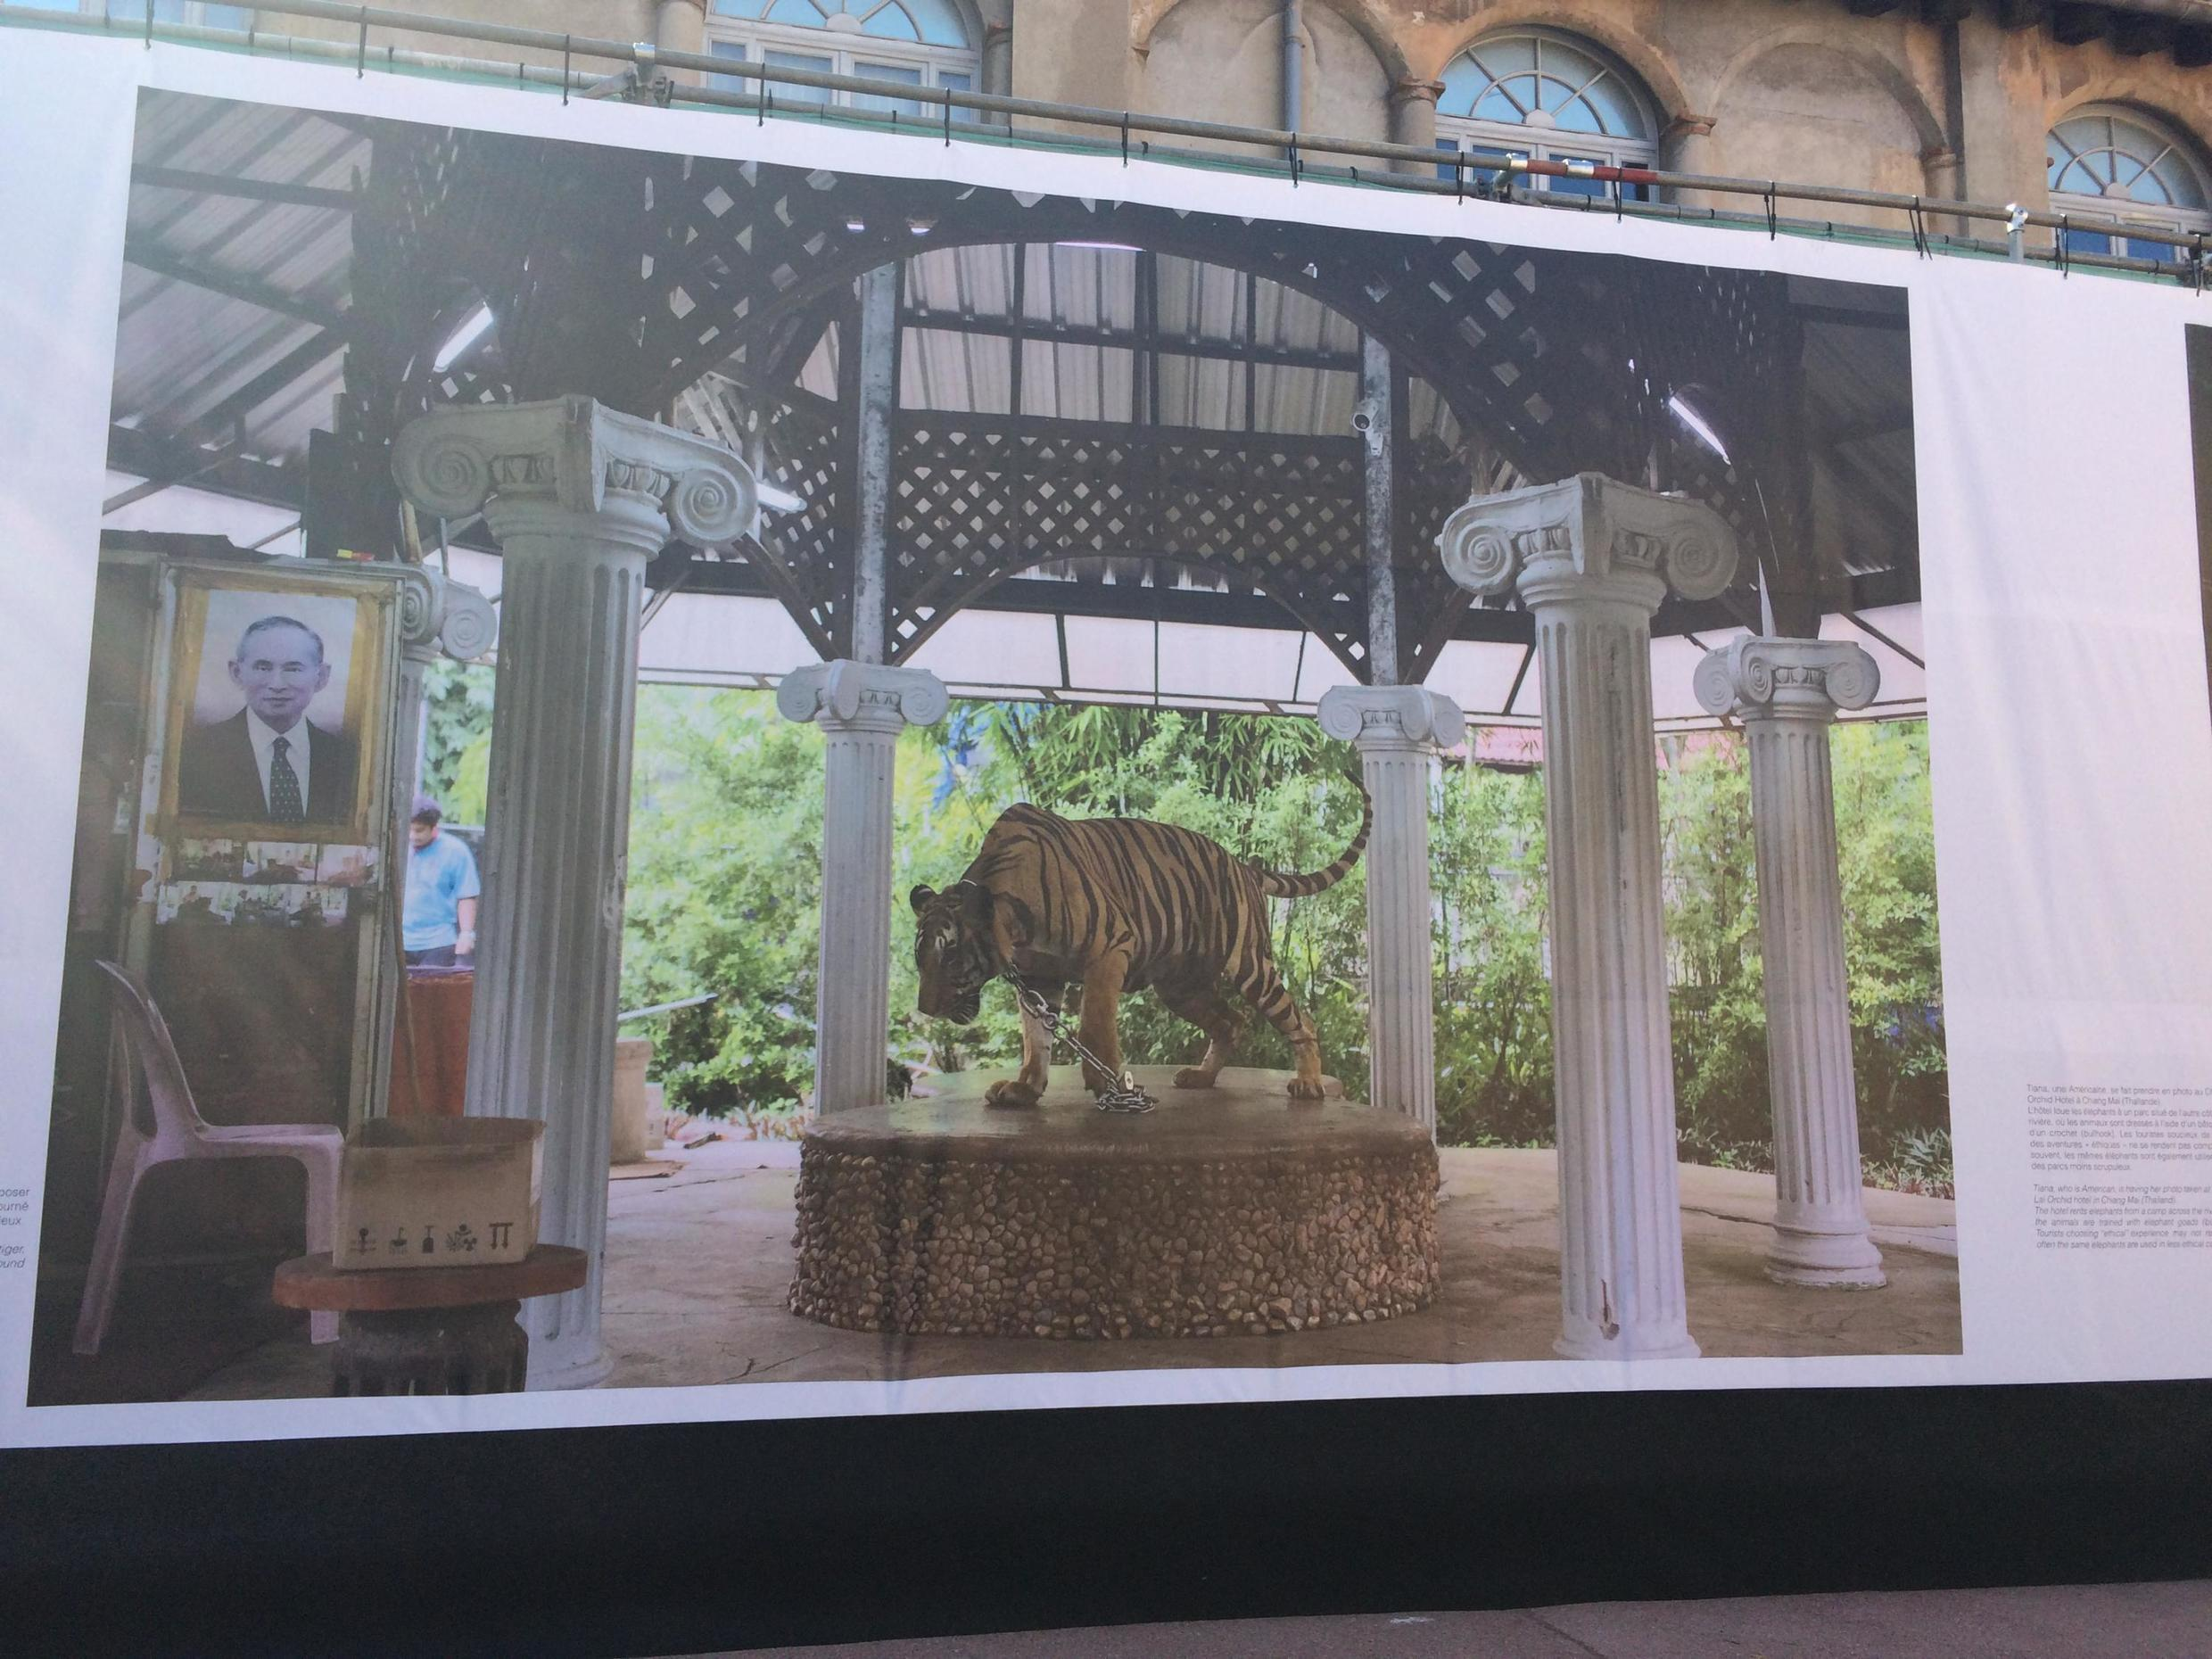 Image of a chained tiger seated on a platform in Kirsten Luce's exposition